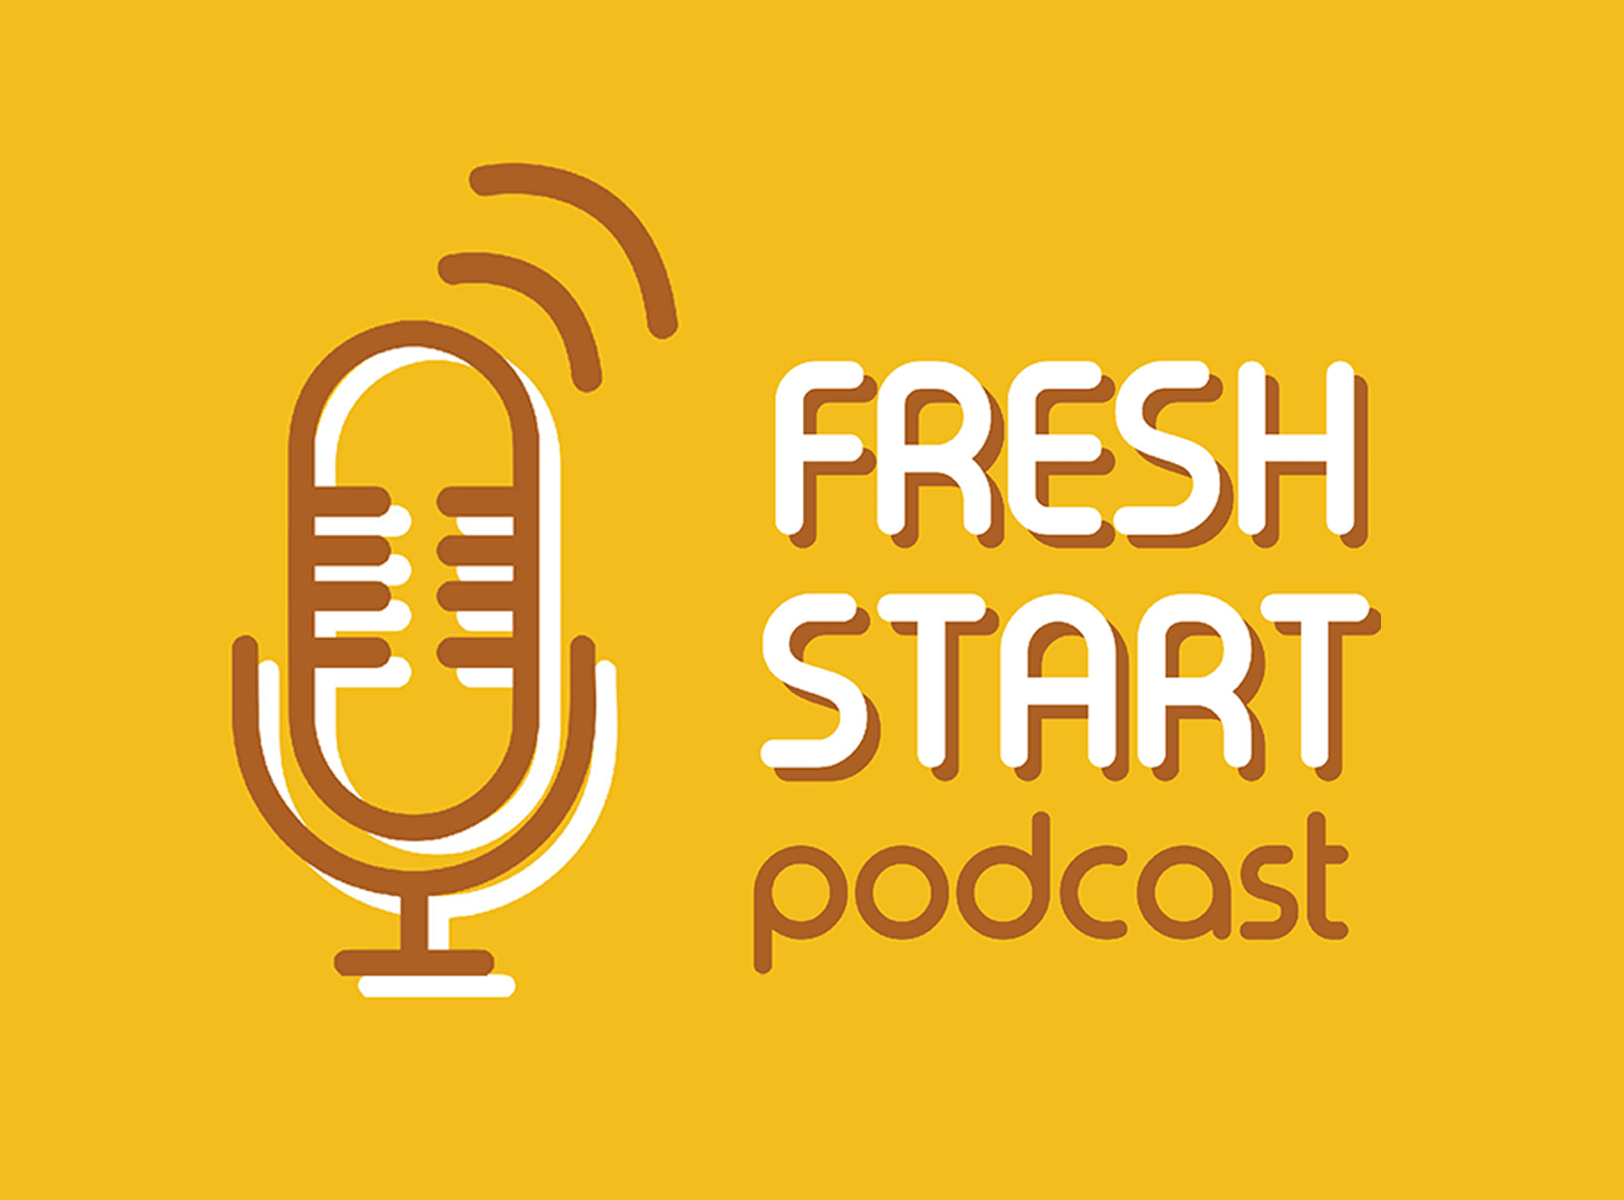 Fresh Start: Podcast News (2/9/2019 Sat.)